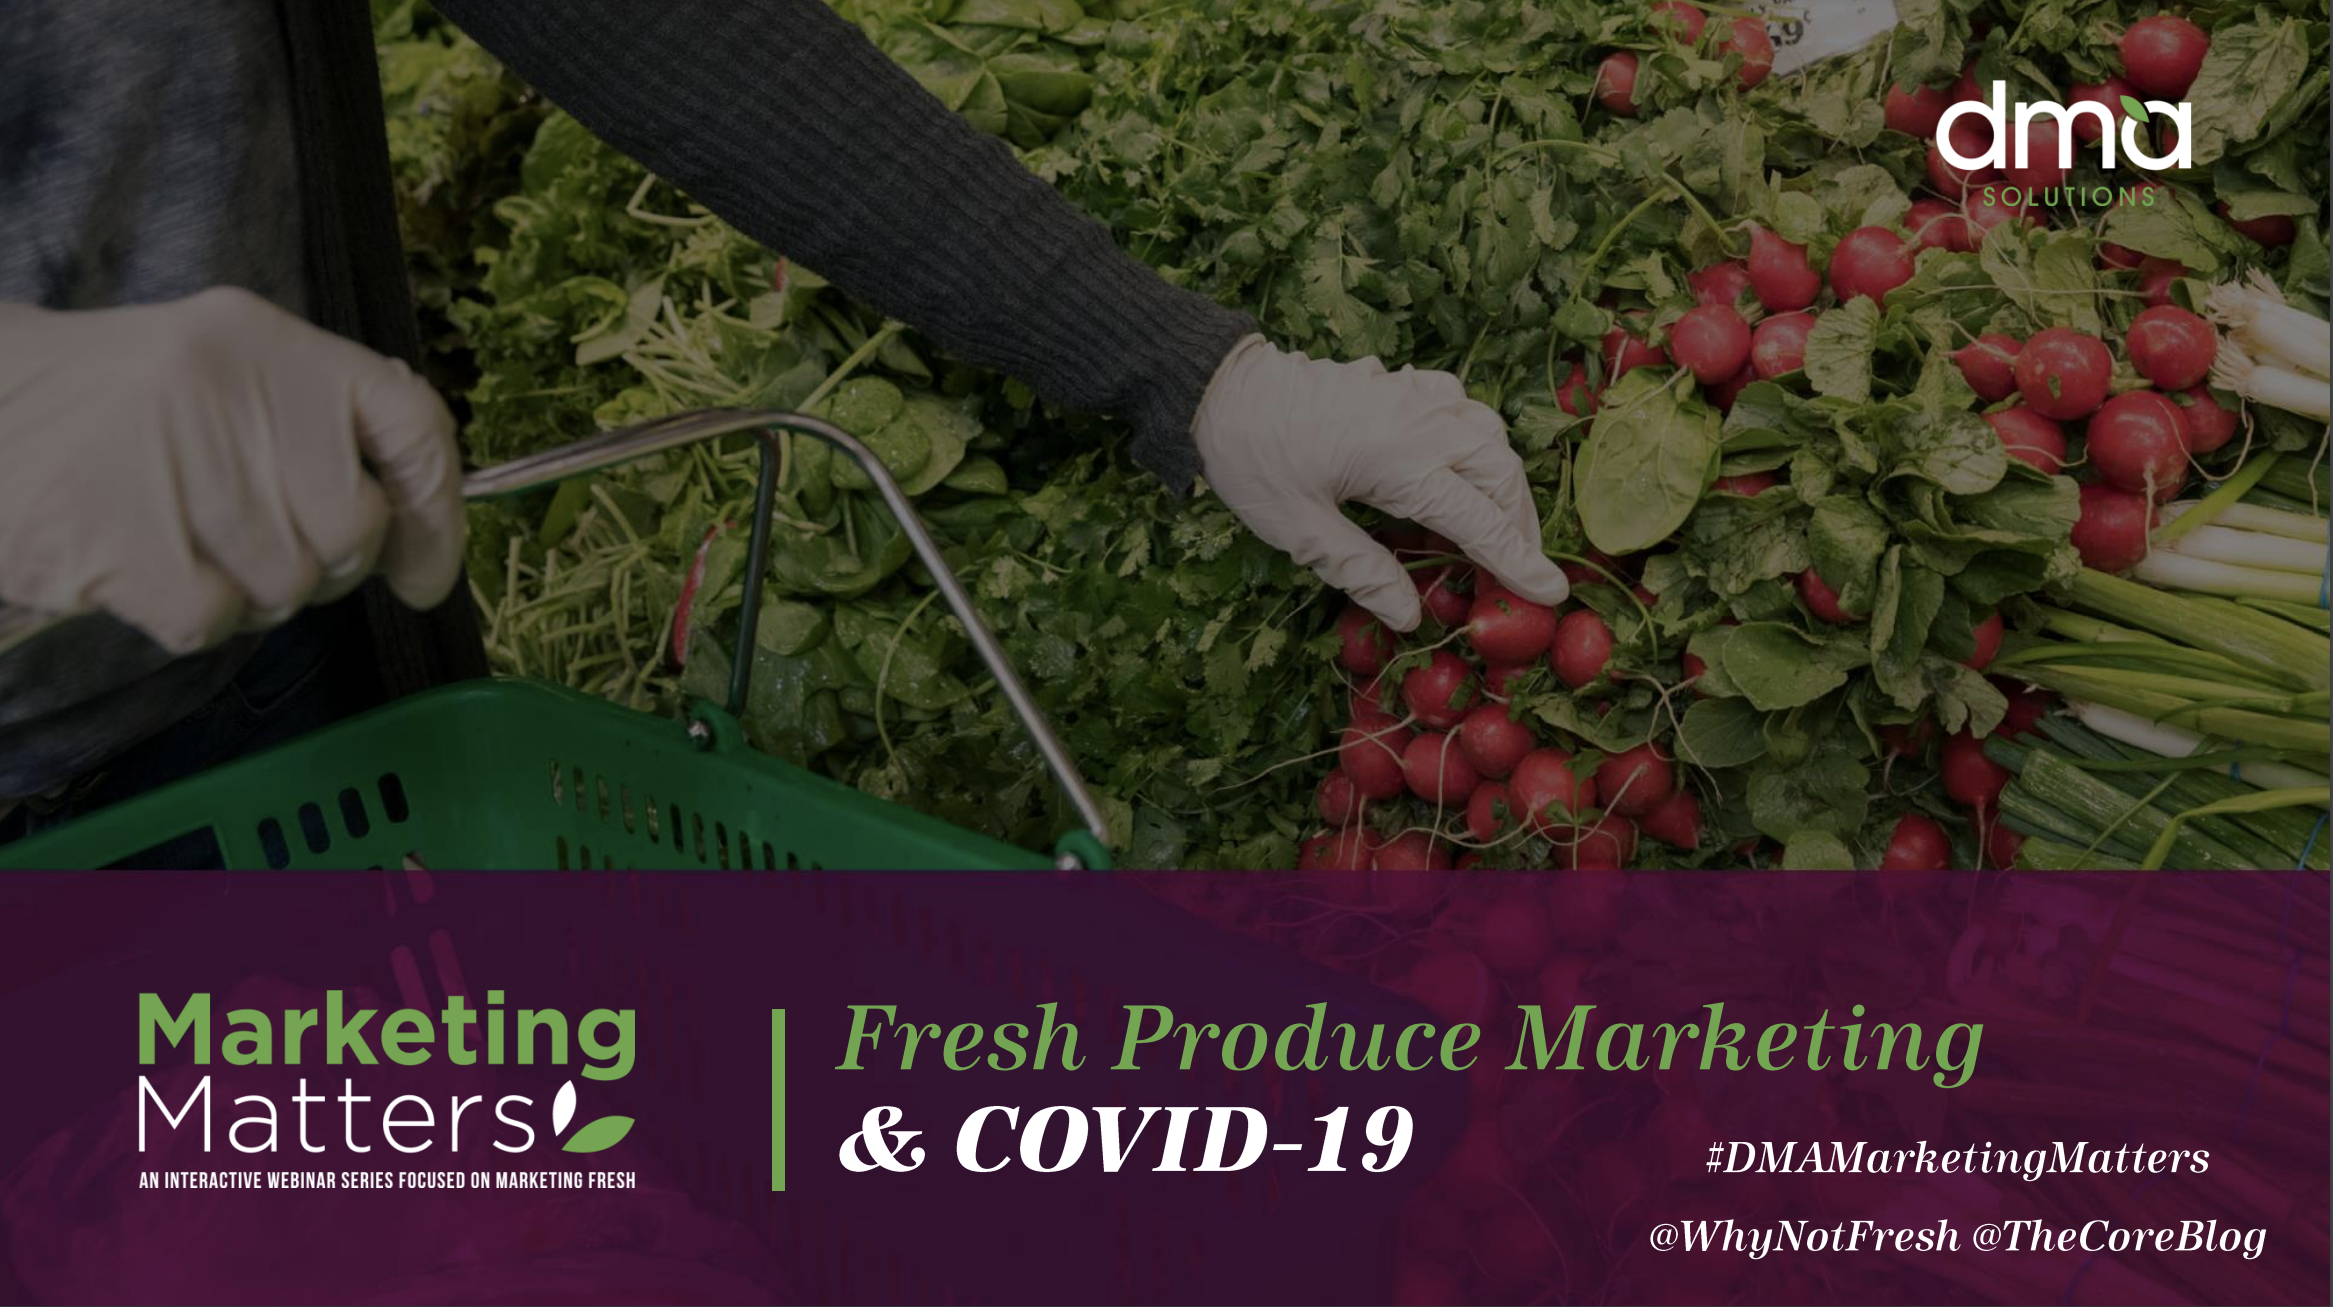 01 Fresh Produce Marketing & COVID-19